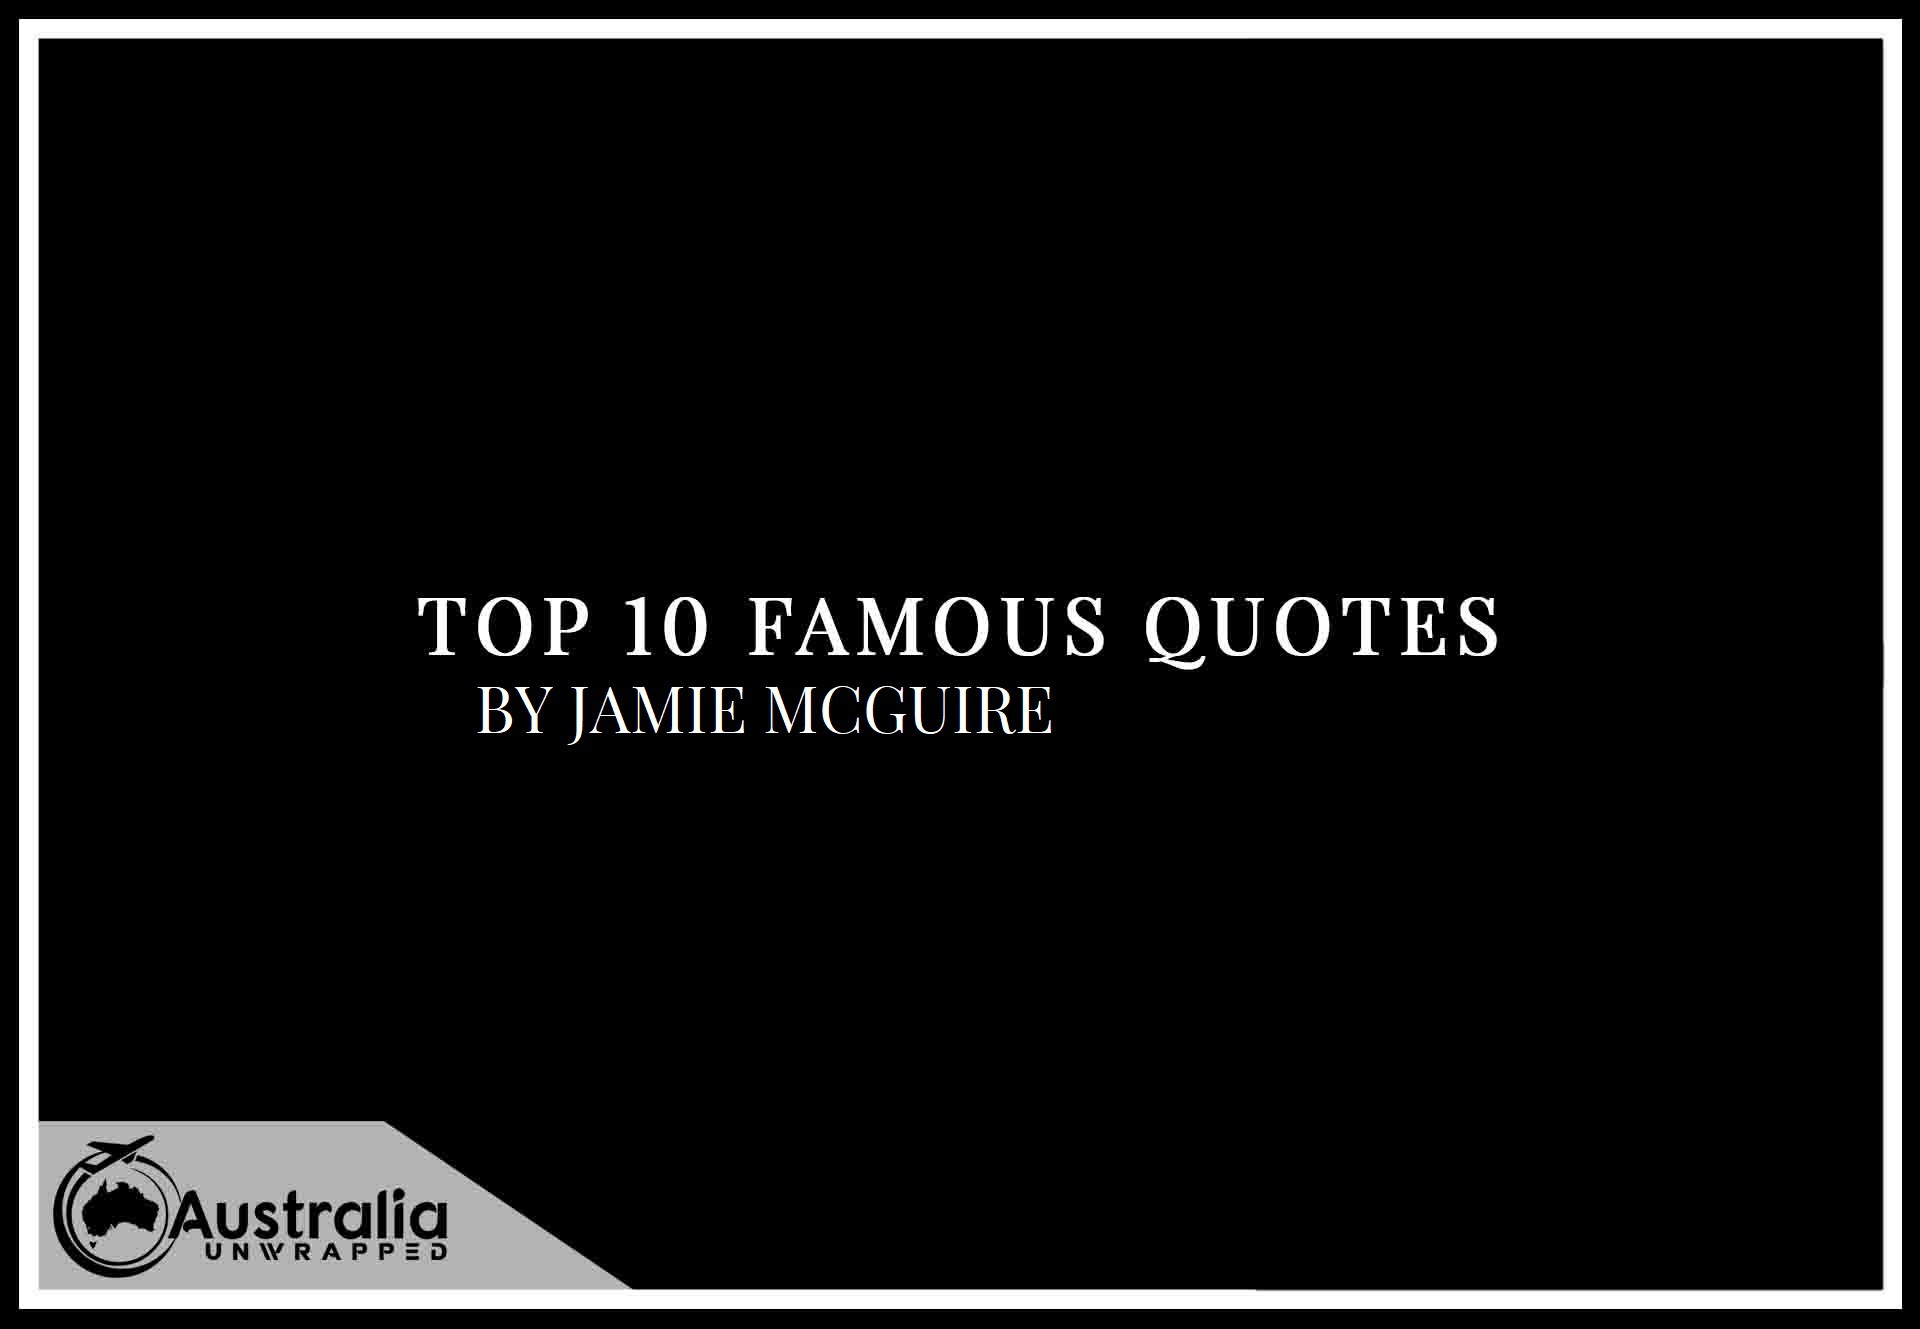 Top 10 Famous Quotes by Author Jamie McGuire